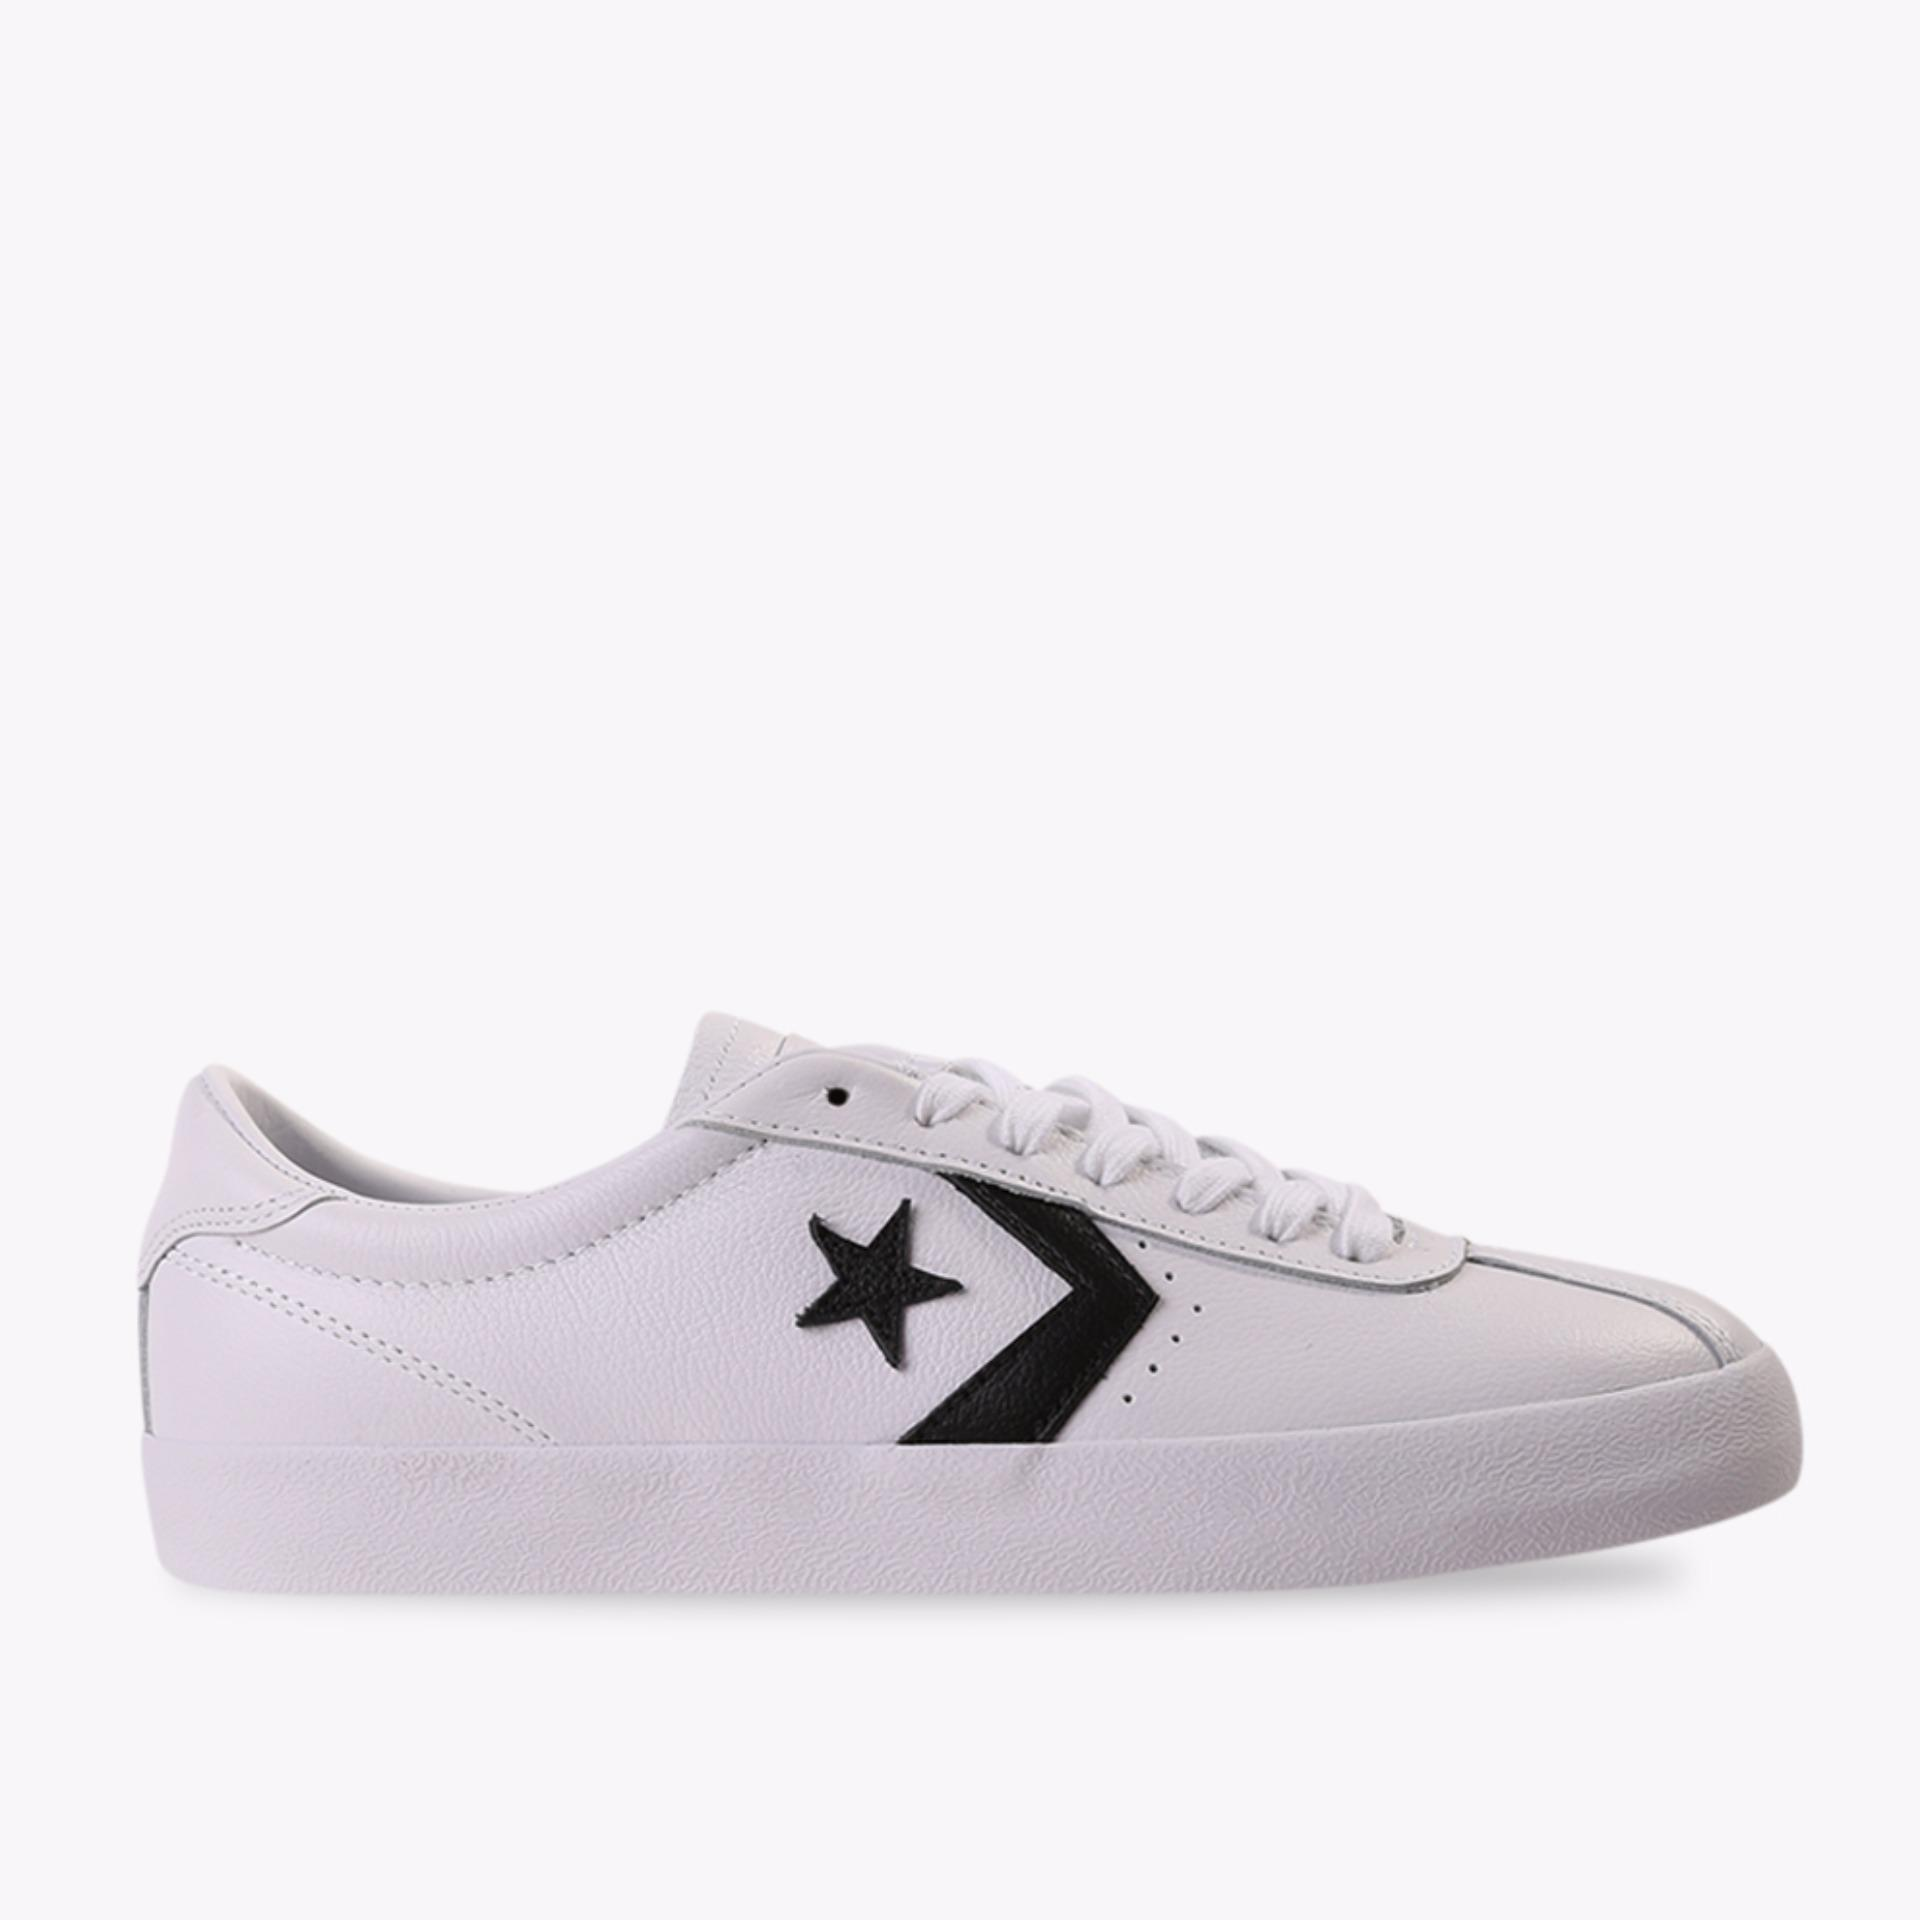 Top 10 Converse Breakpoint Leather Ox Men S Sneakers Shoes Putih Online